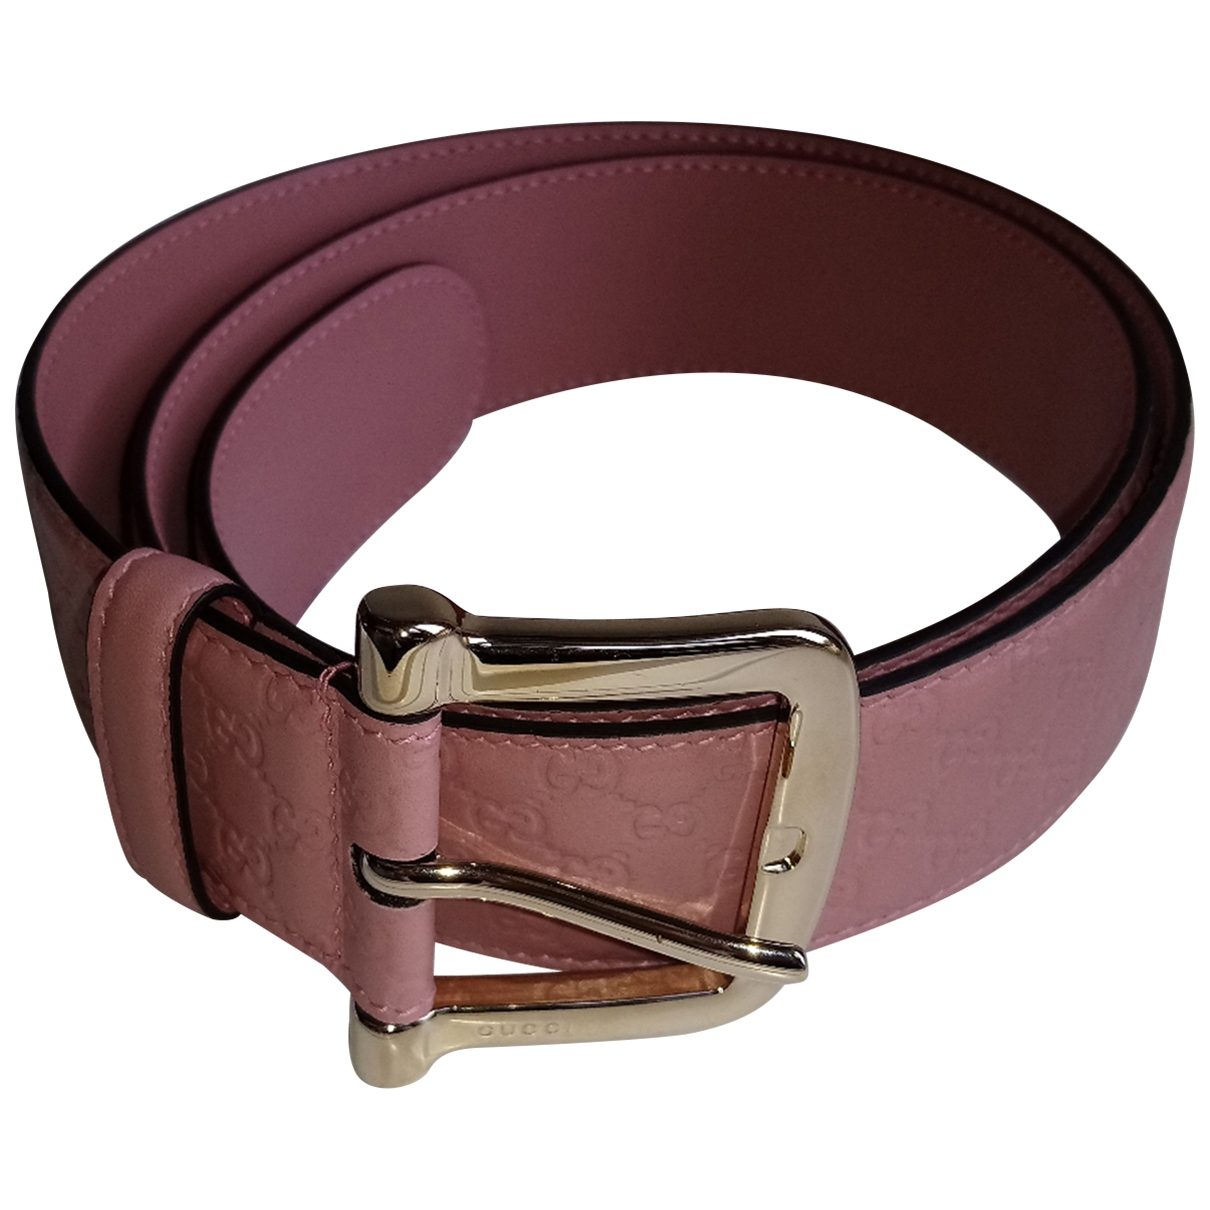 Gucci \N Pink Leather belt for Women S International